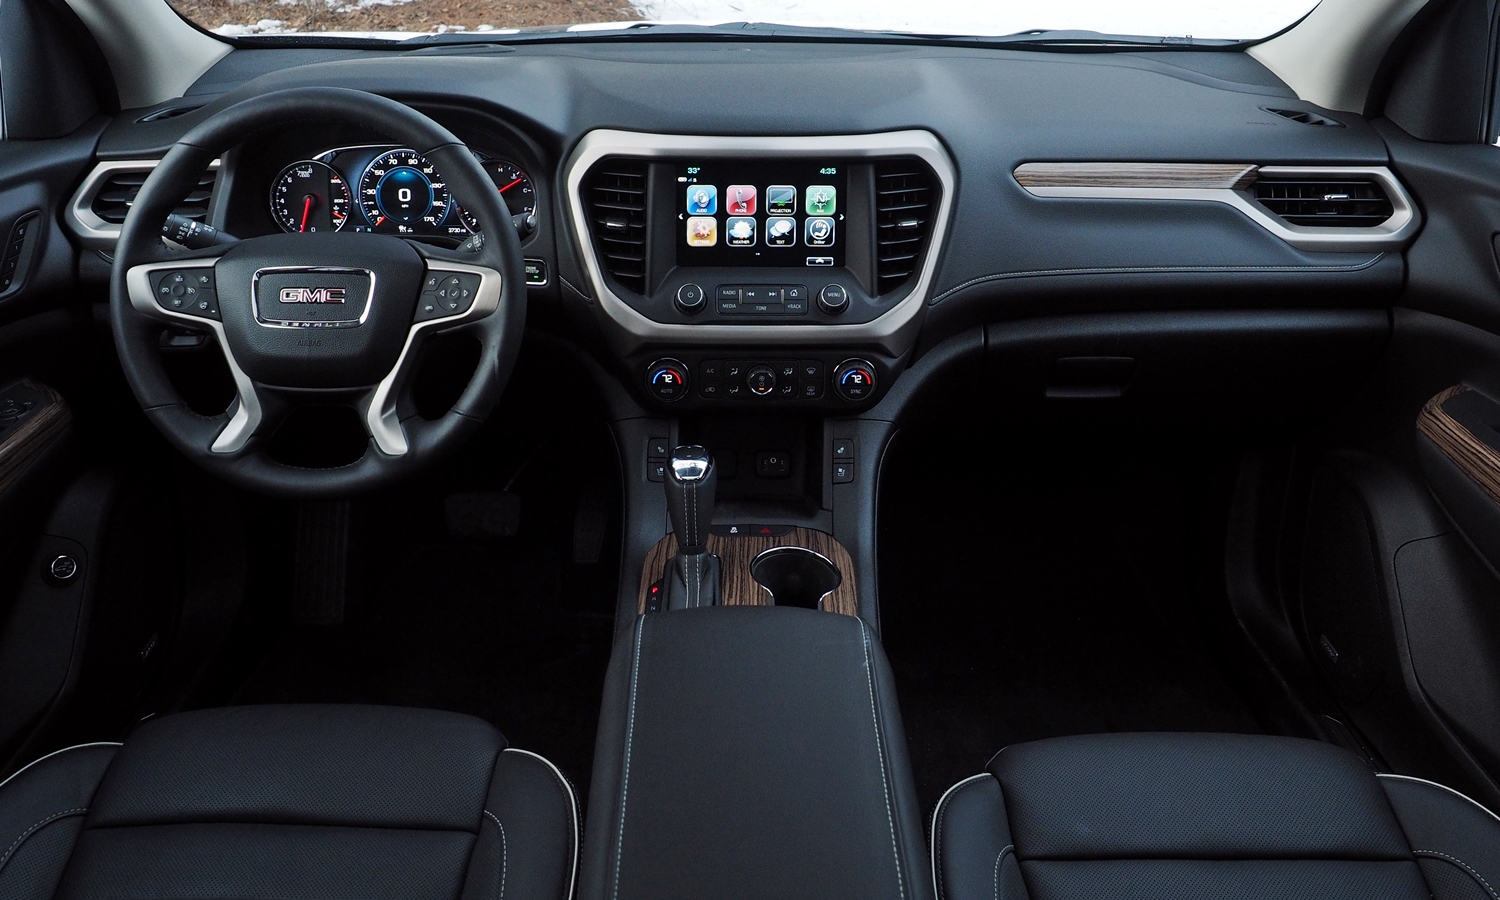 GMC Acadia Photos: 2017 GMC Acadia instrument panel full width